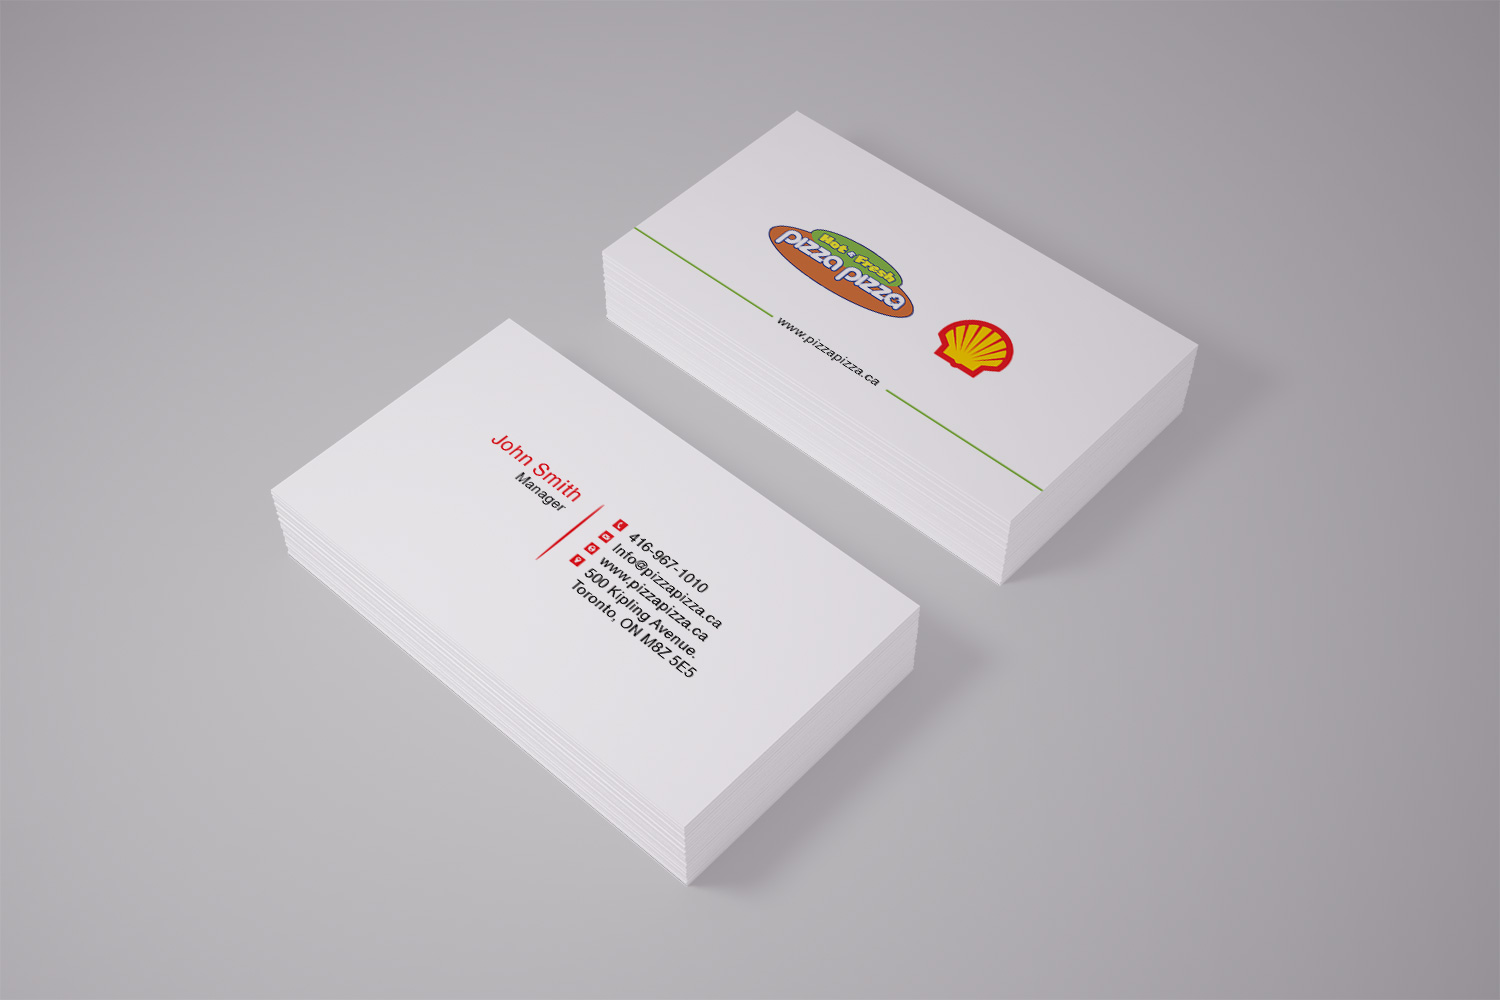 Serious modern restaurant business card design for shell gas business card design by pawana designs for shell gas station design 14067553 colourmoves